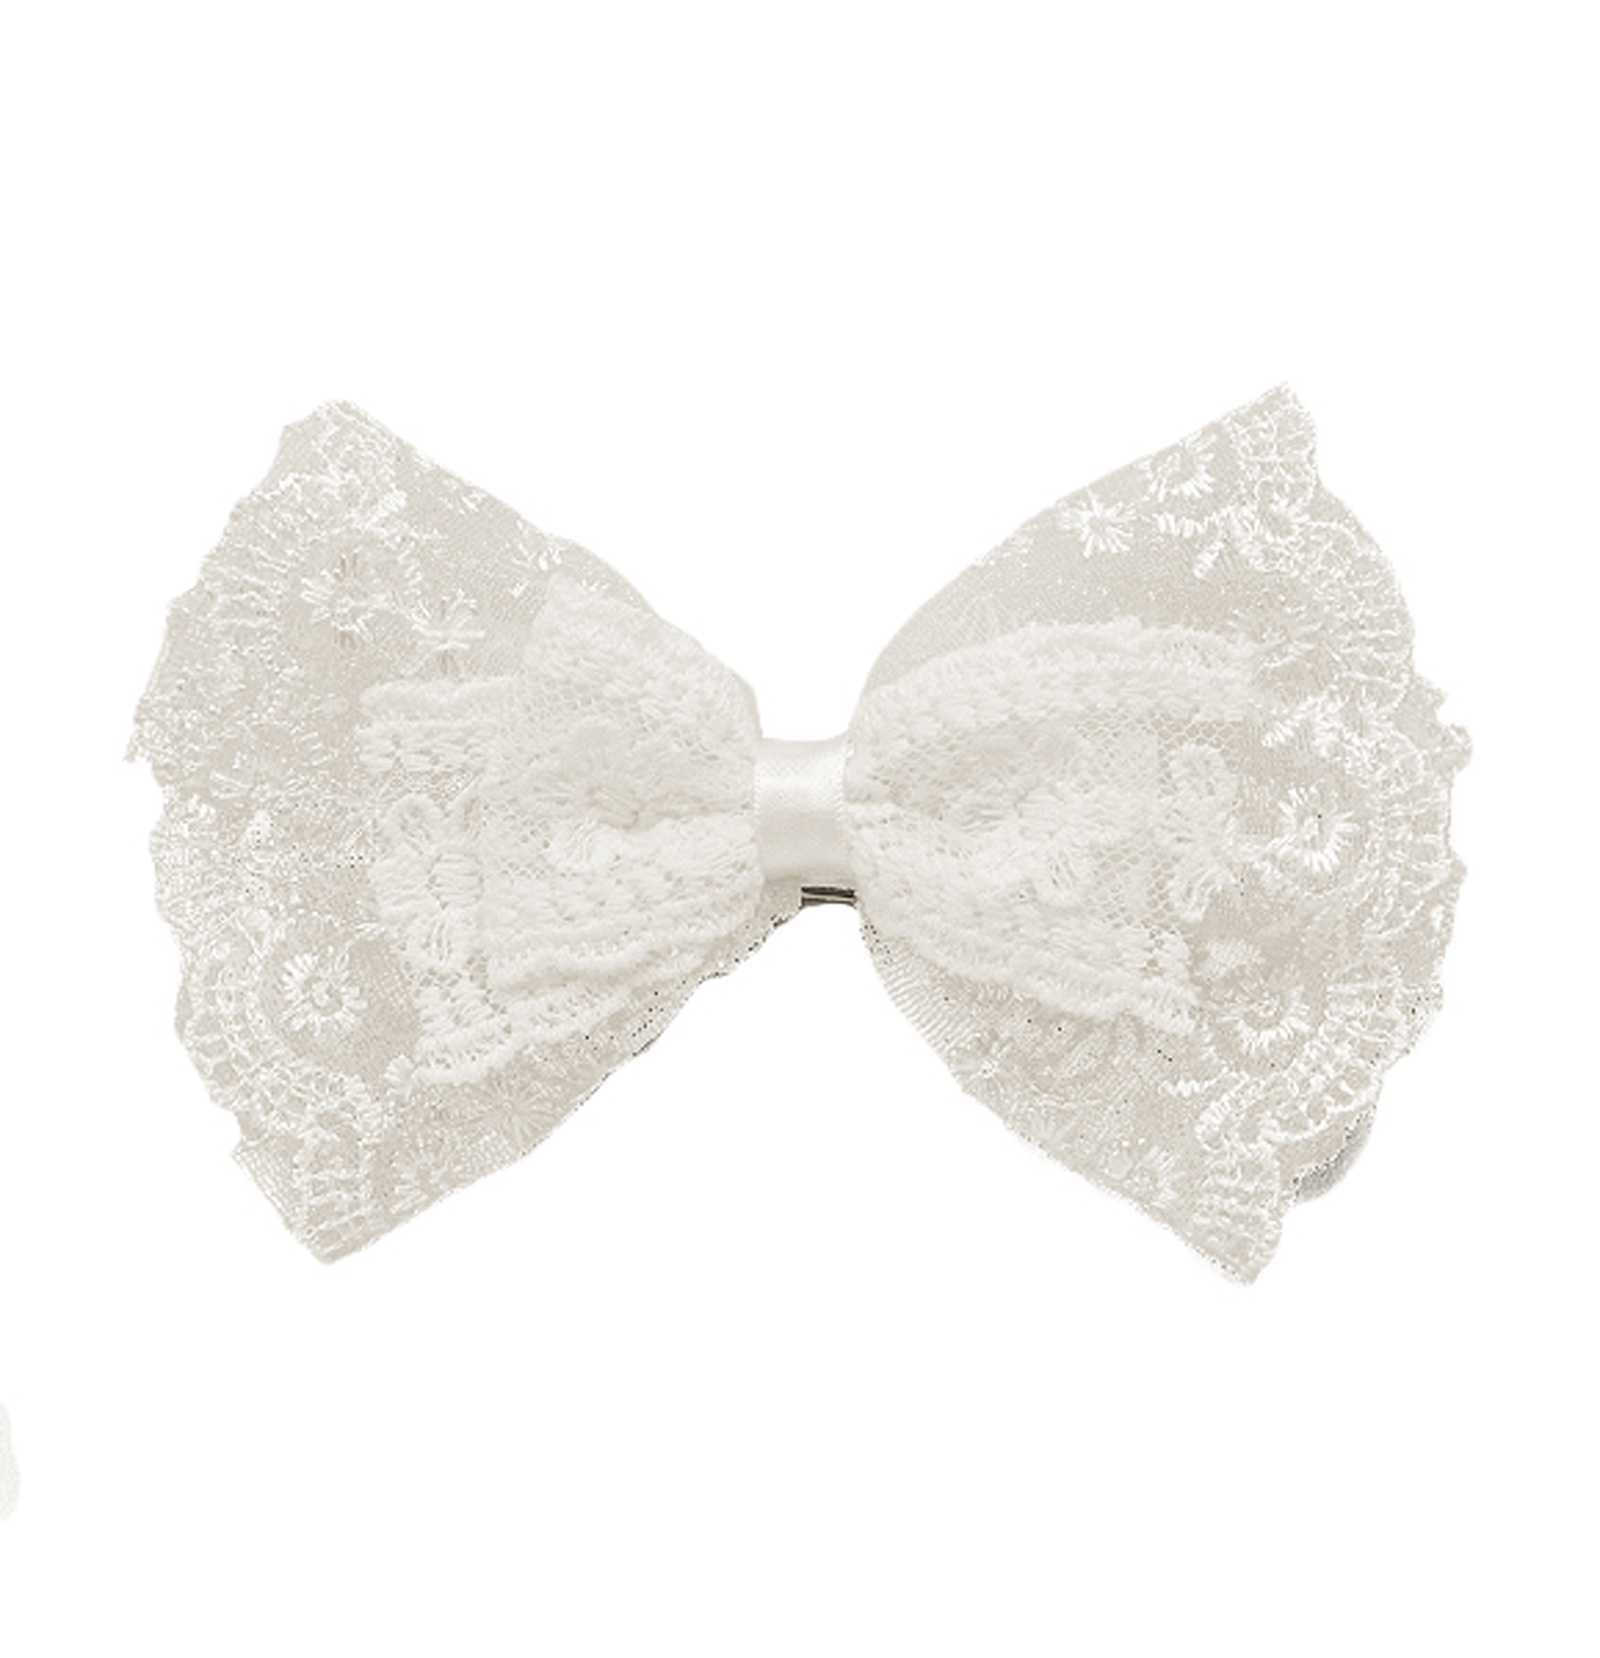 6'' X 4'' Lace Double Bow Brooch And